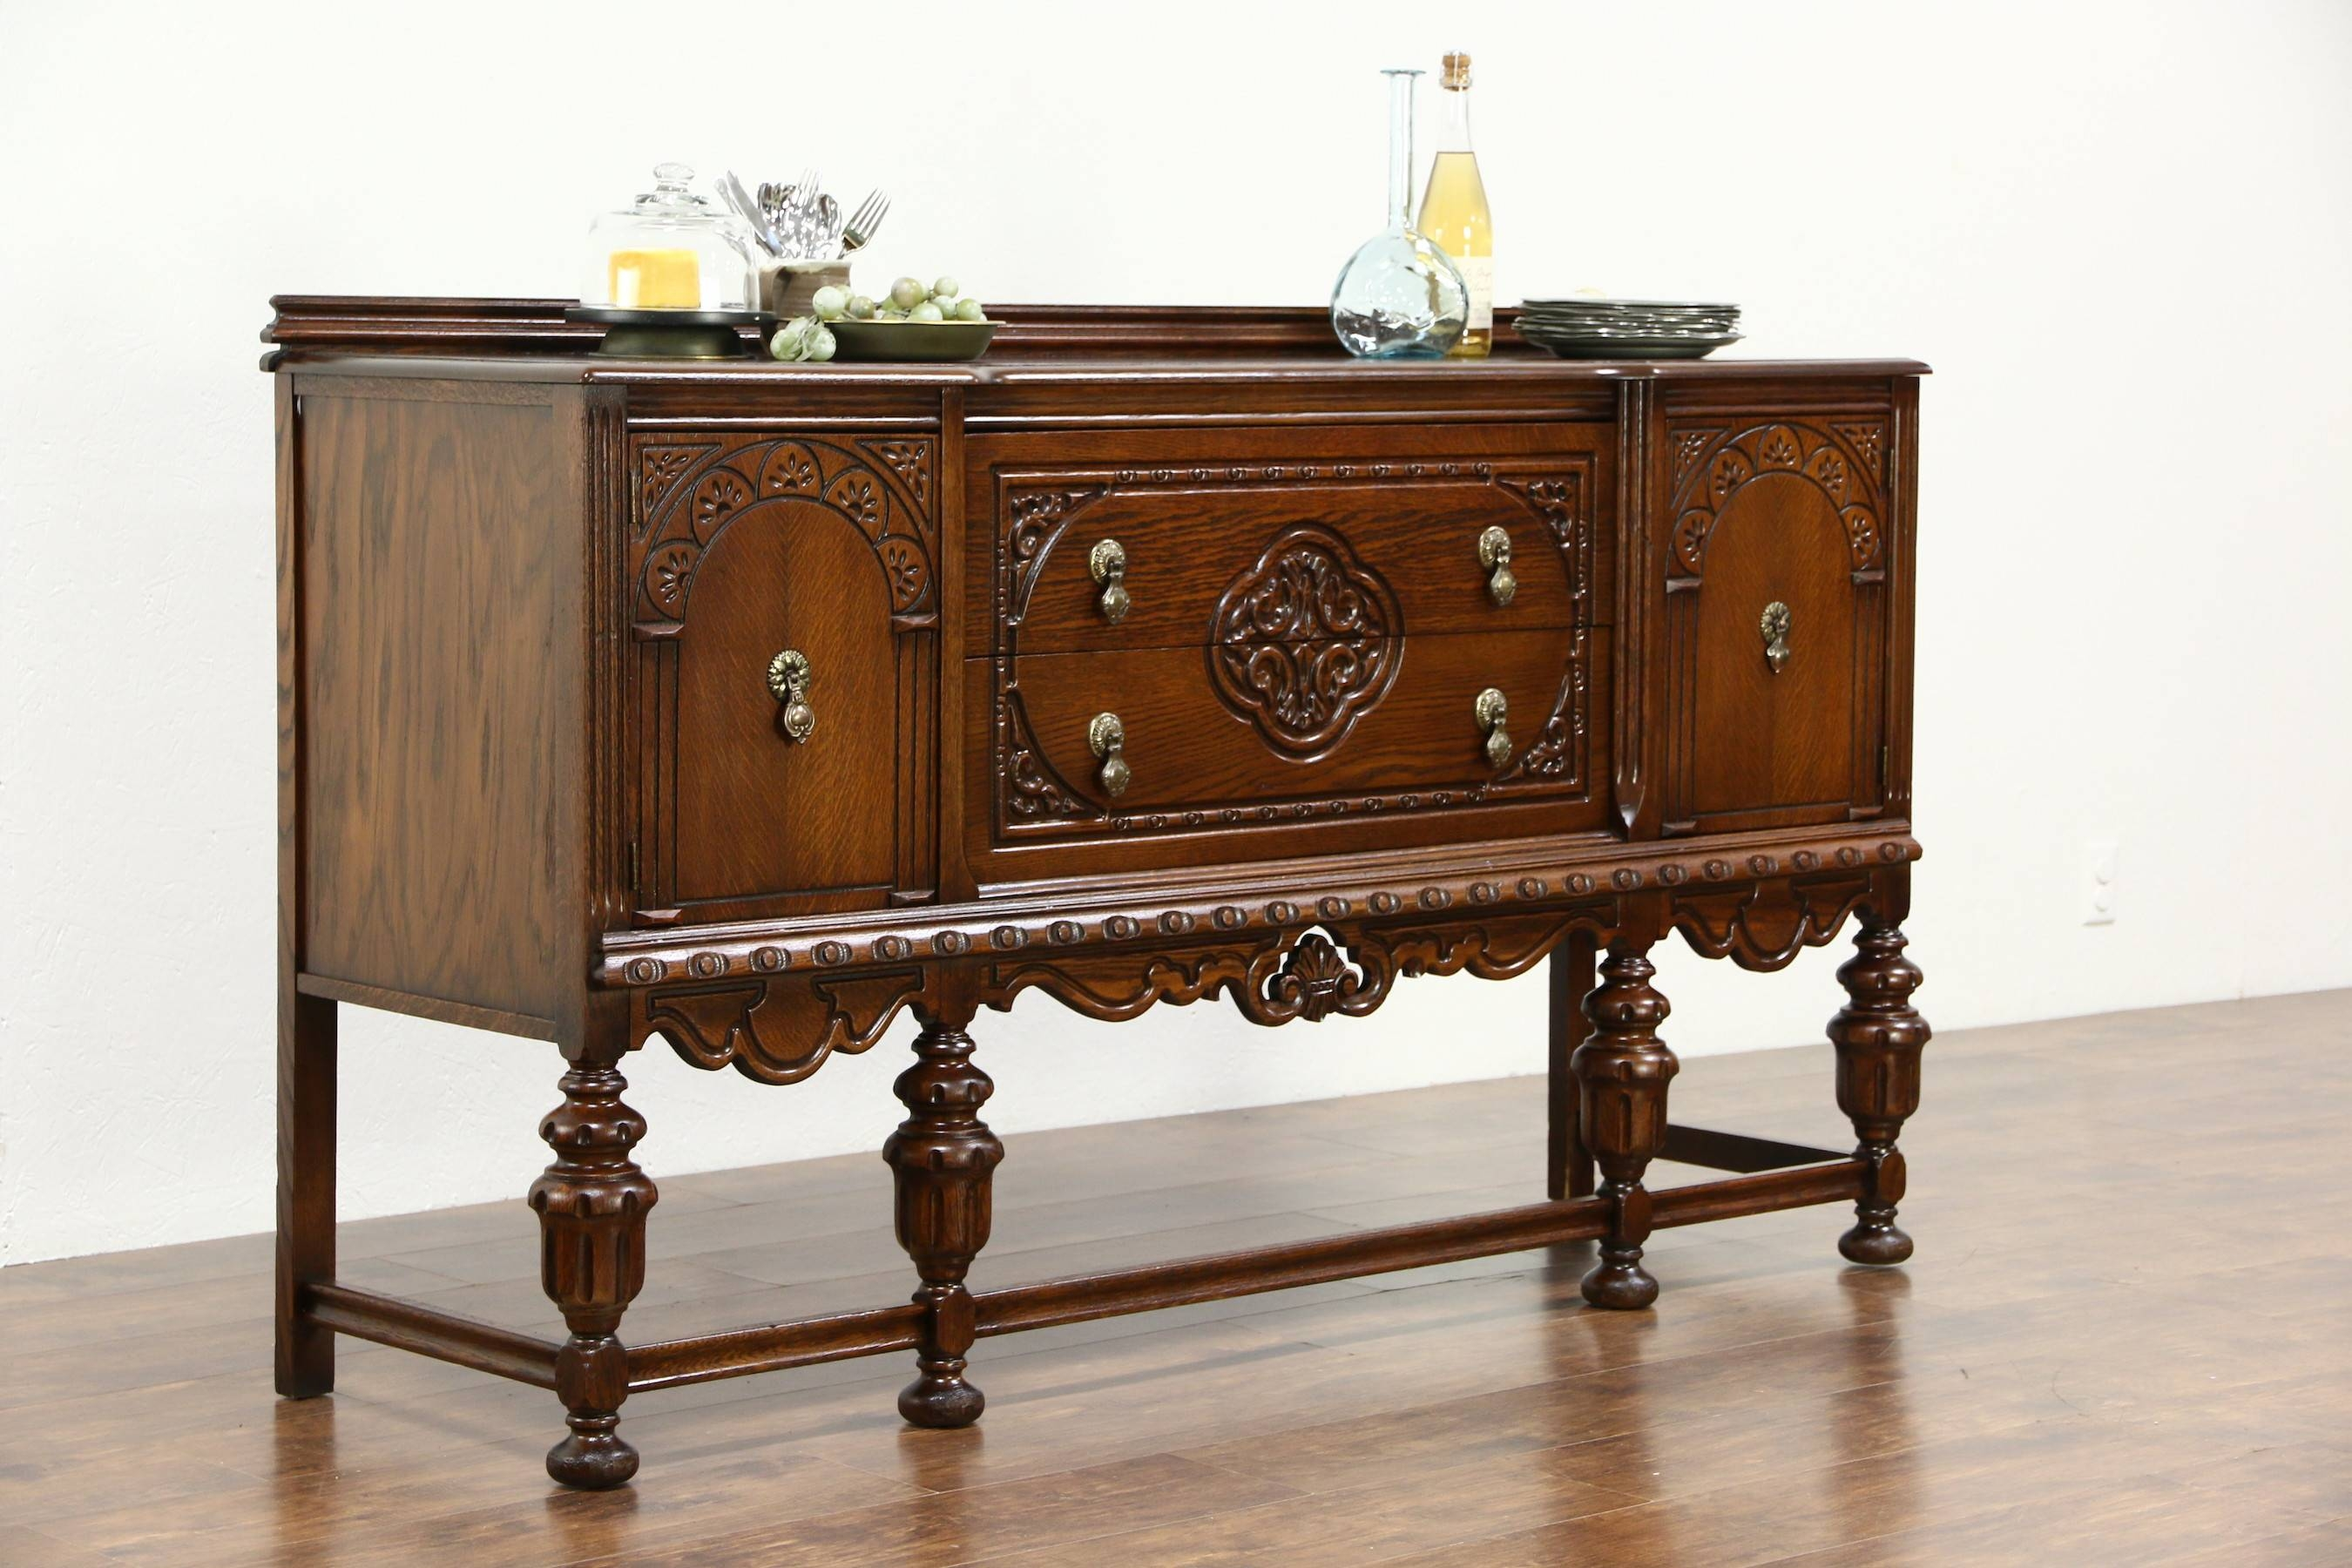 Tudor Design 1925 Antique Carved Oak Sideboard, Server Or Buffet Throughout Most Up To Date Antique Oak Sideboards (#12 of 15)